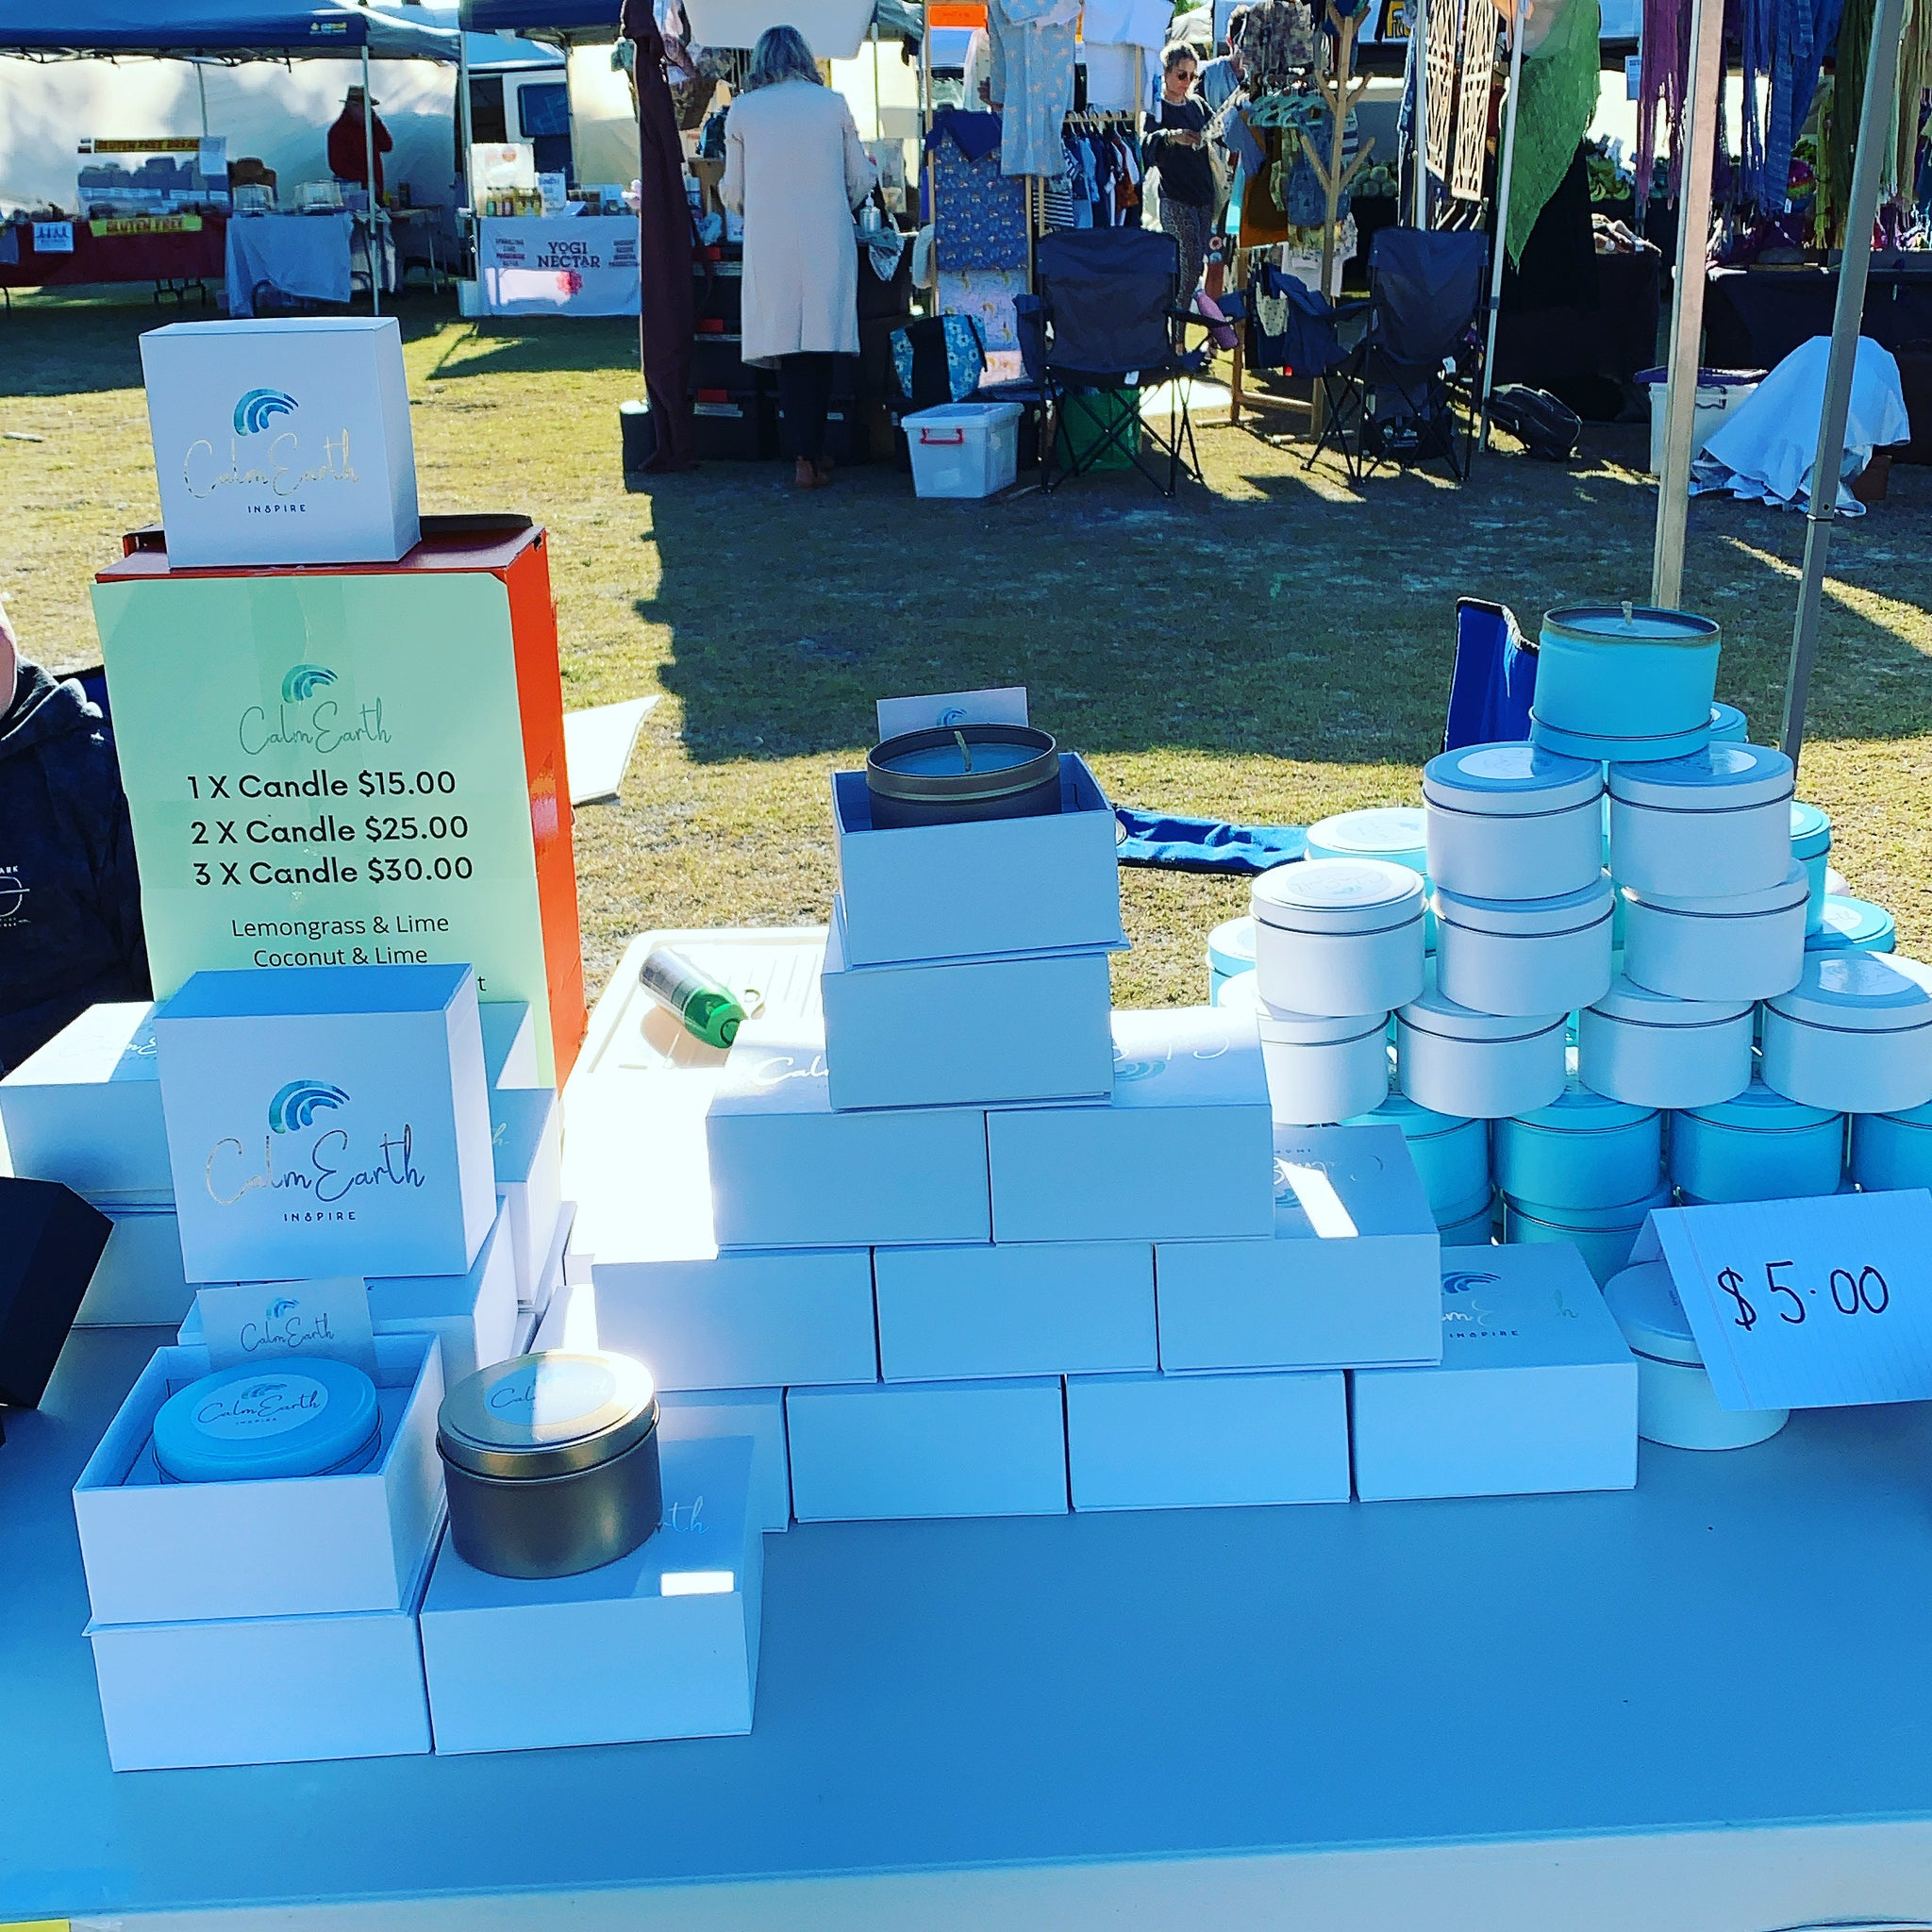 Calm Earth Co was at Kingscliff Market